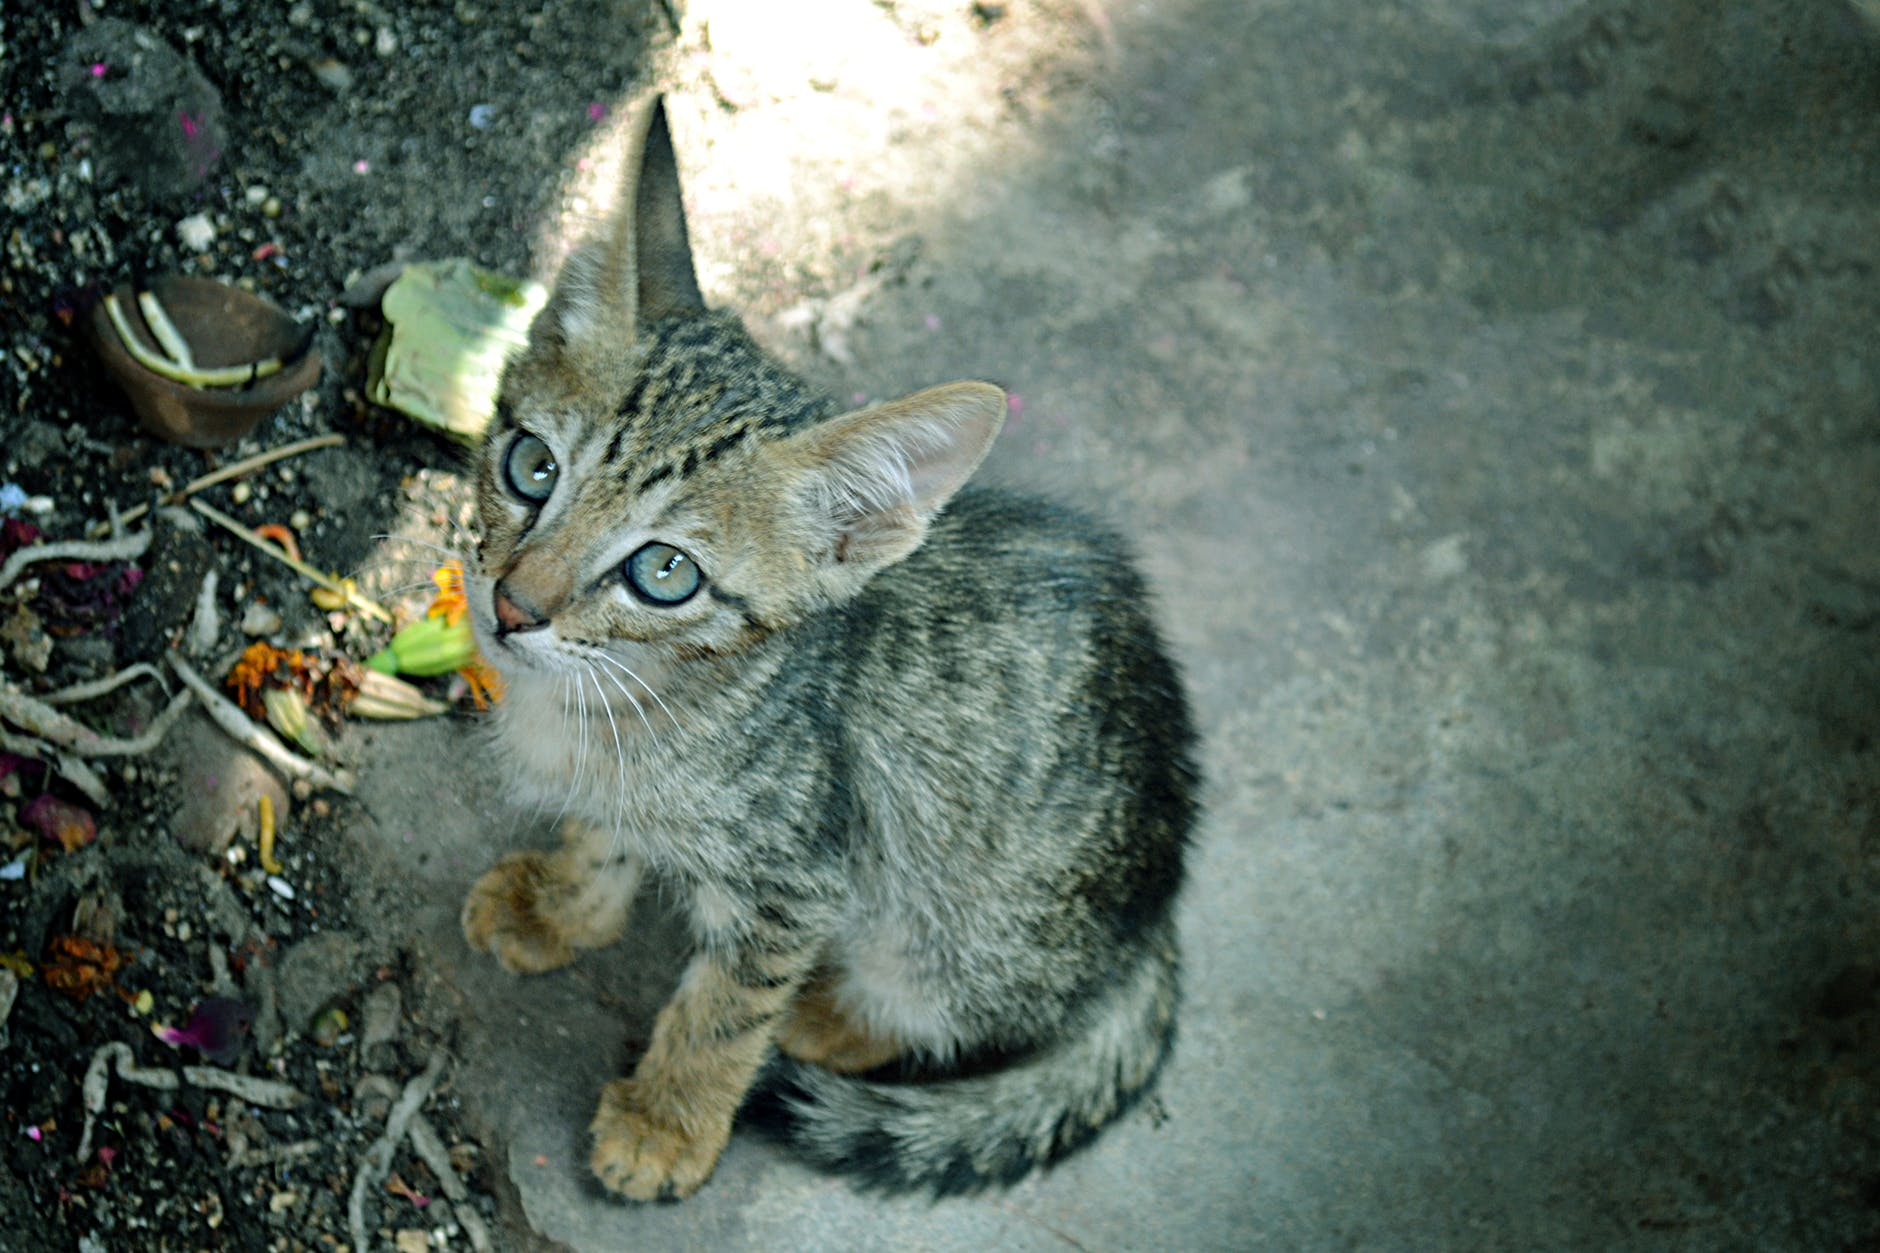 Indian billi native cat